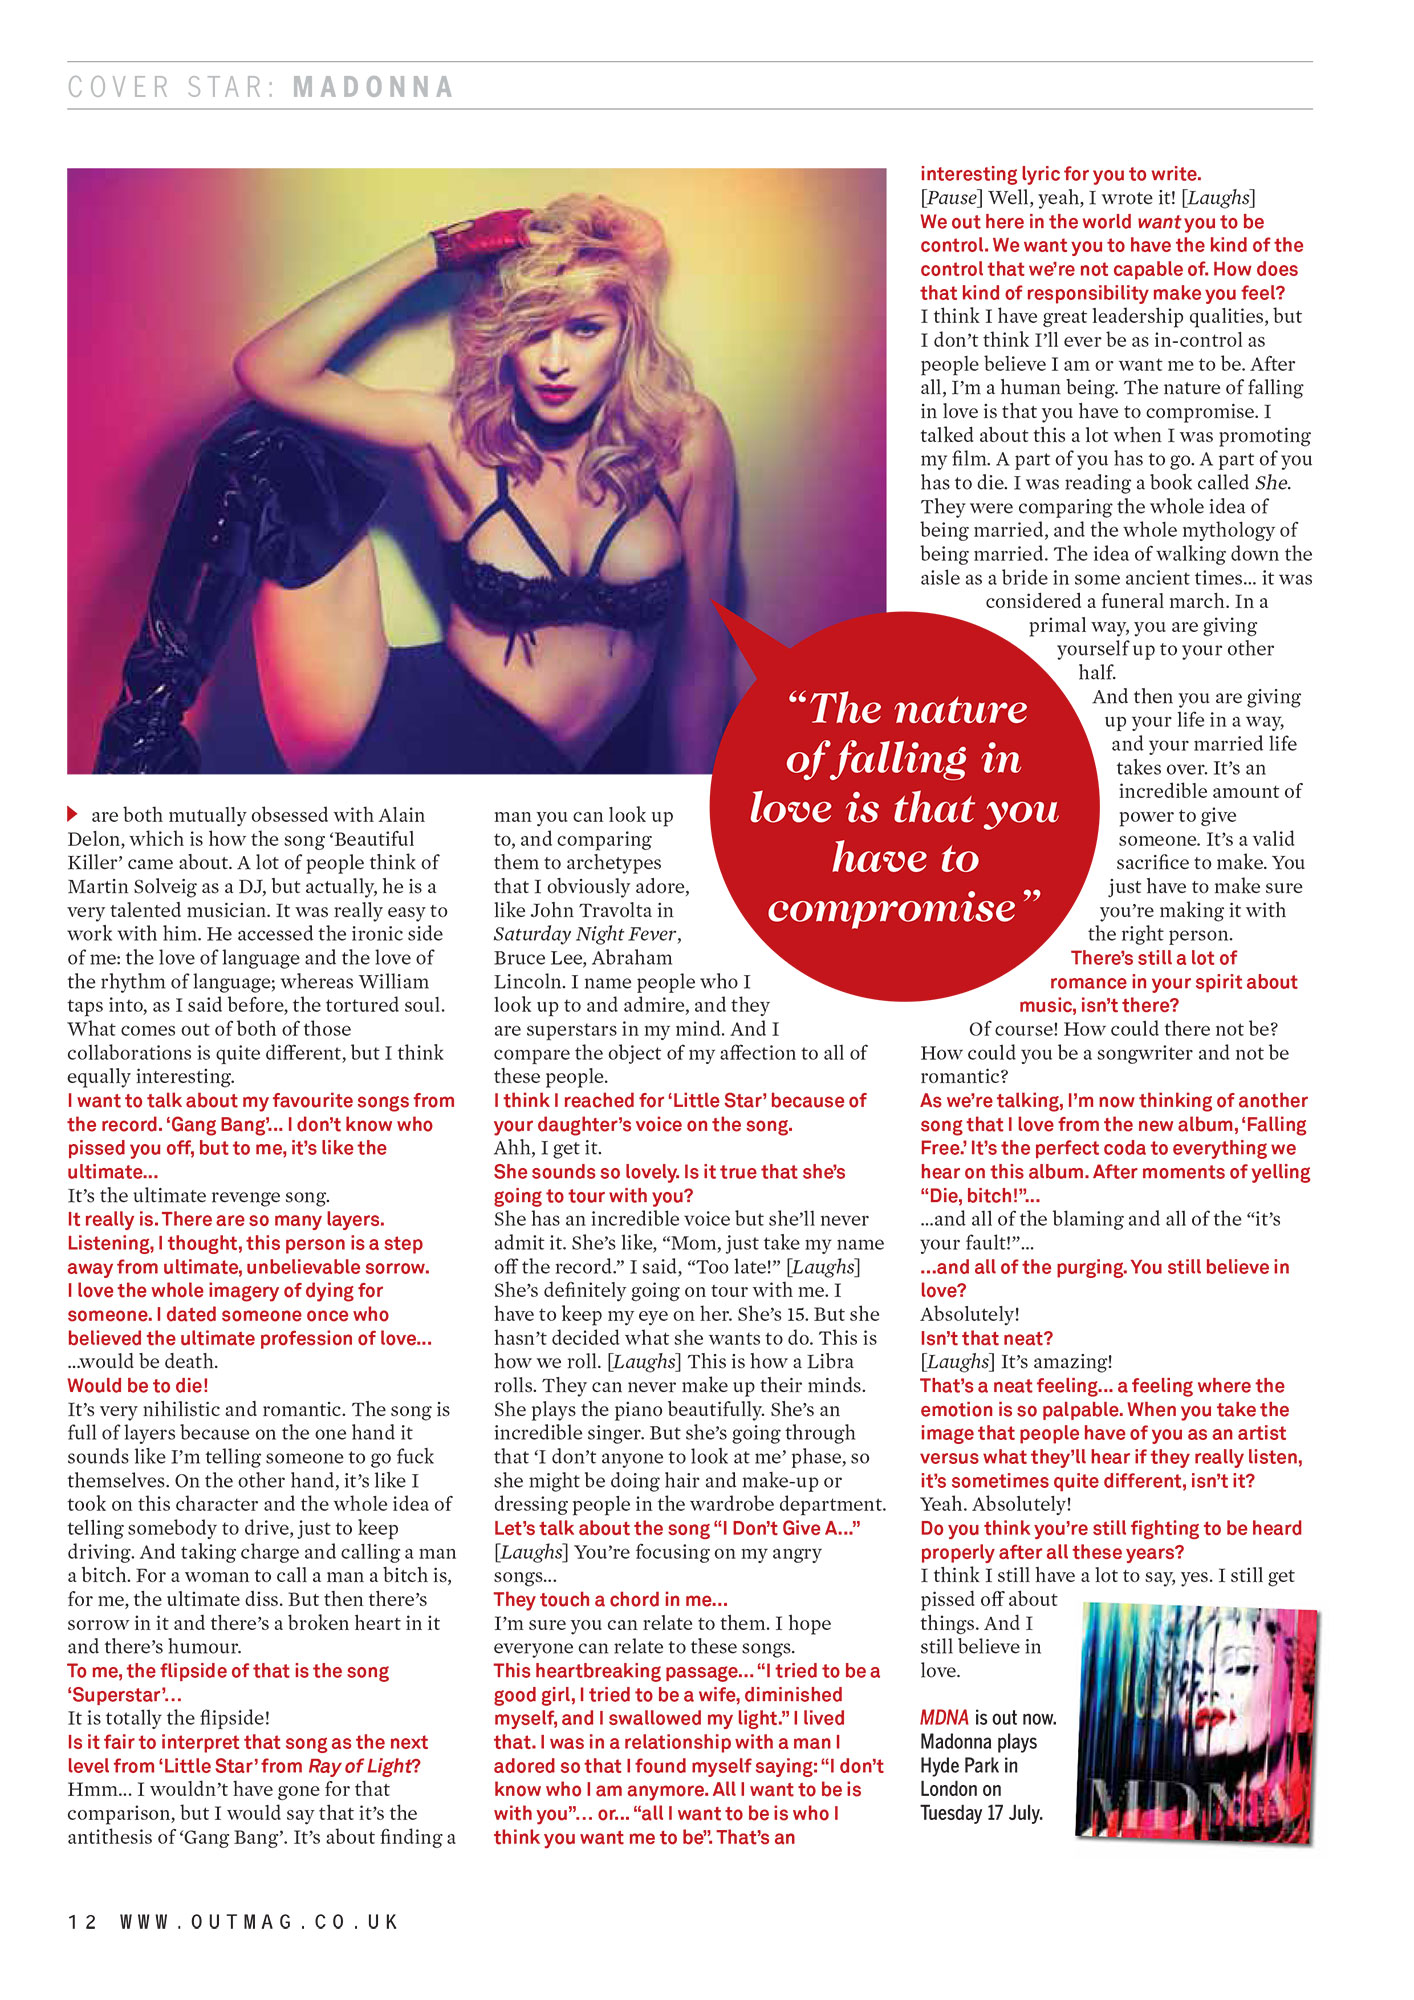 12-05-07-madonna-out-mag-uk-may-04